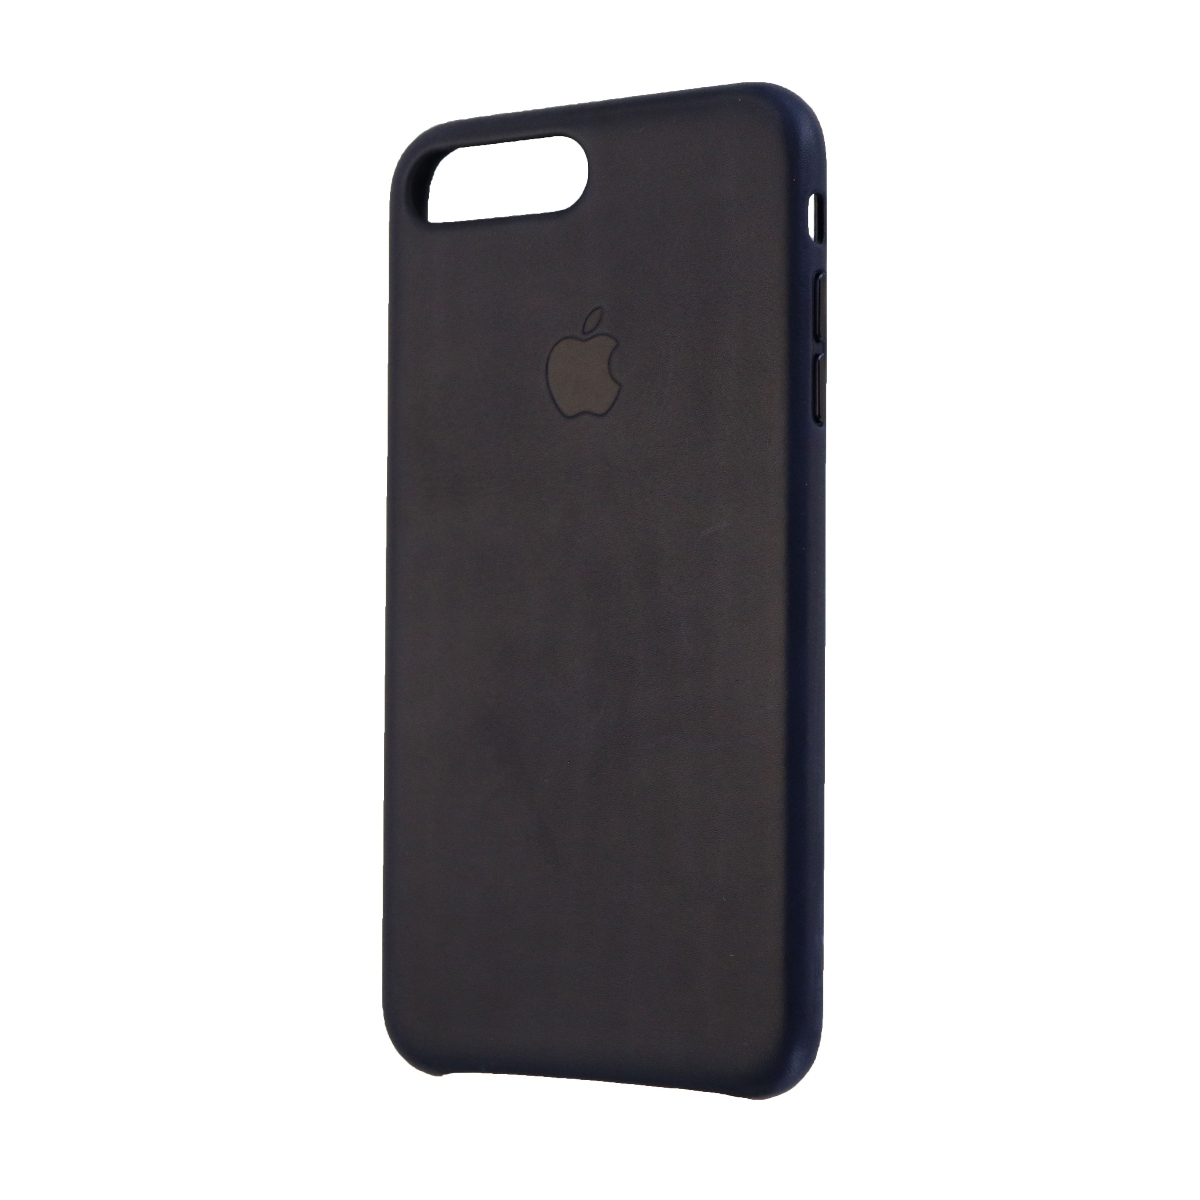 Apple Leather Case Cover for Apple iPhone 8 Plus 7 Plus - Midnight Blue